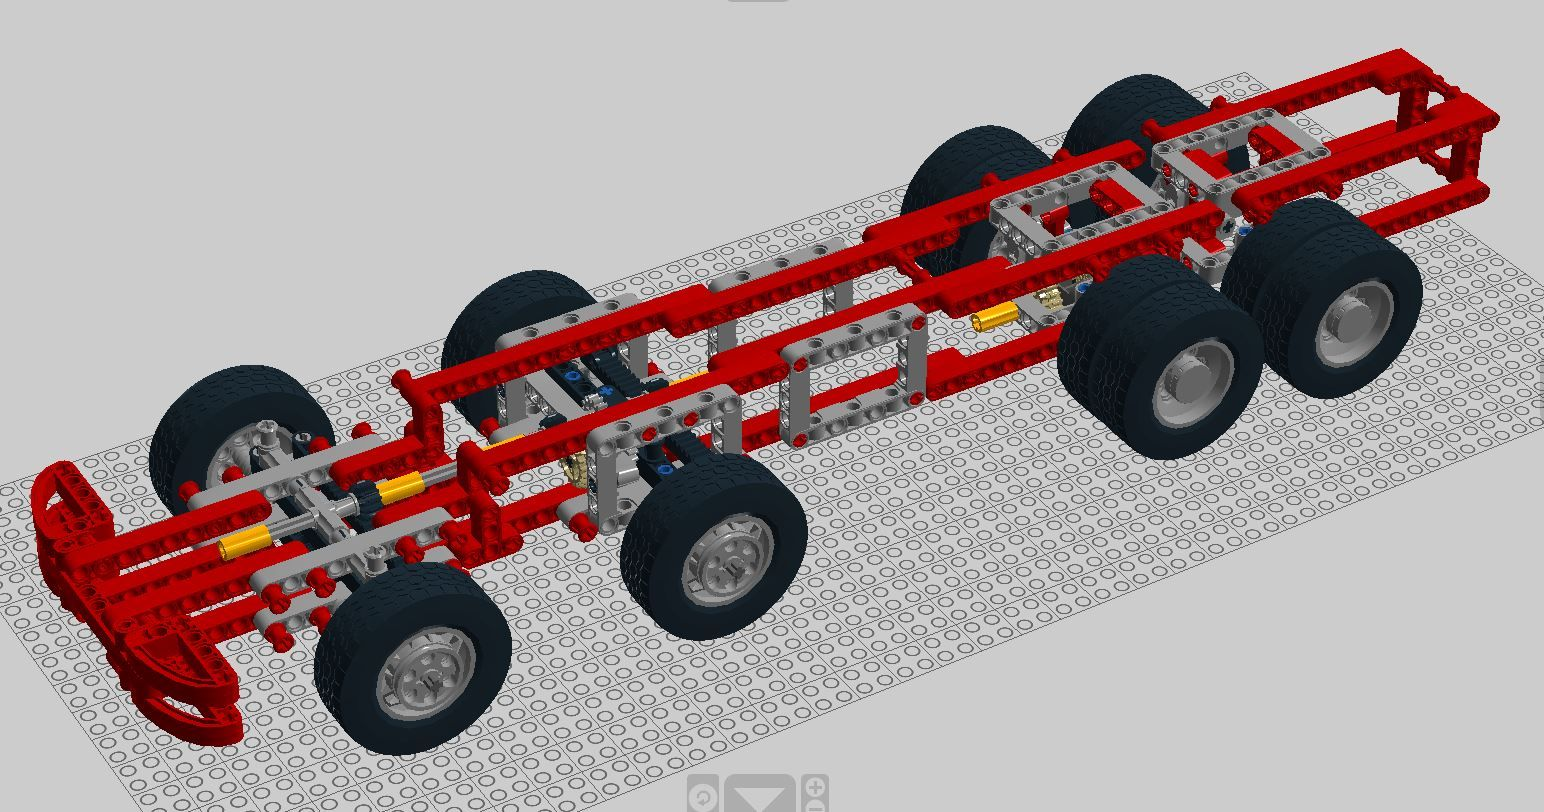 image result for lego technic truck lego building techniques tecnic pinterest lego lego. Black Bedroom Furniture Sets. Home Design Ideas